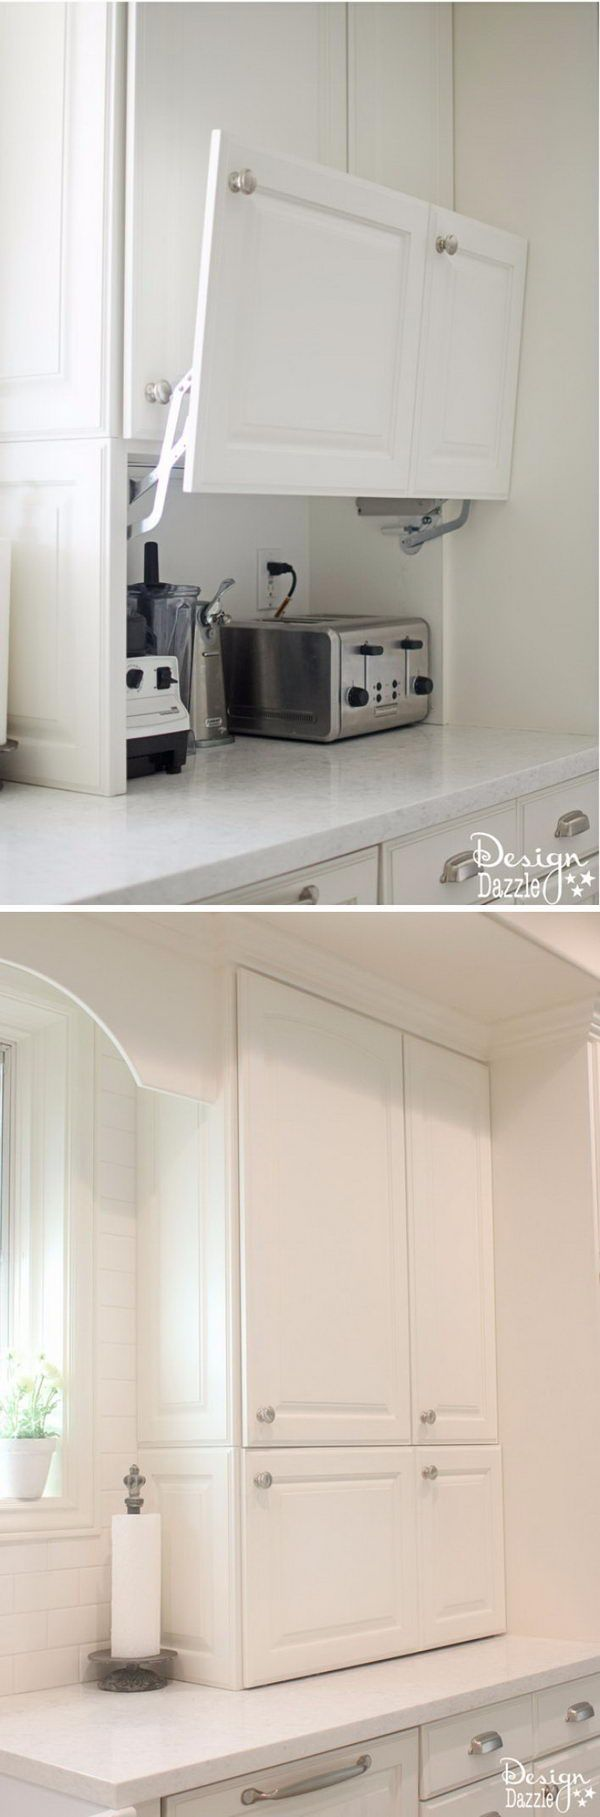 Best 25 hidden storage ideas on pinterest under cabinet for Hidden kitchen storage ideas